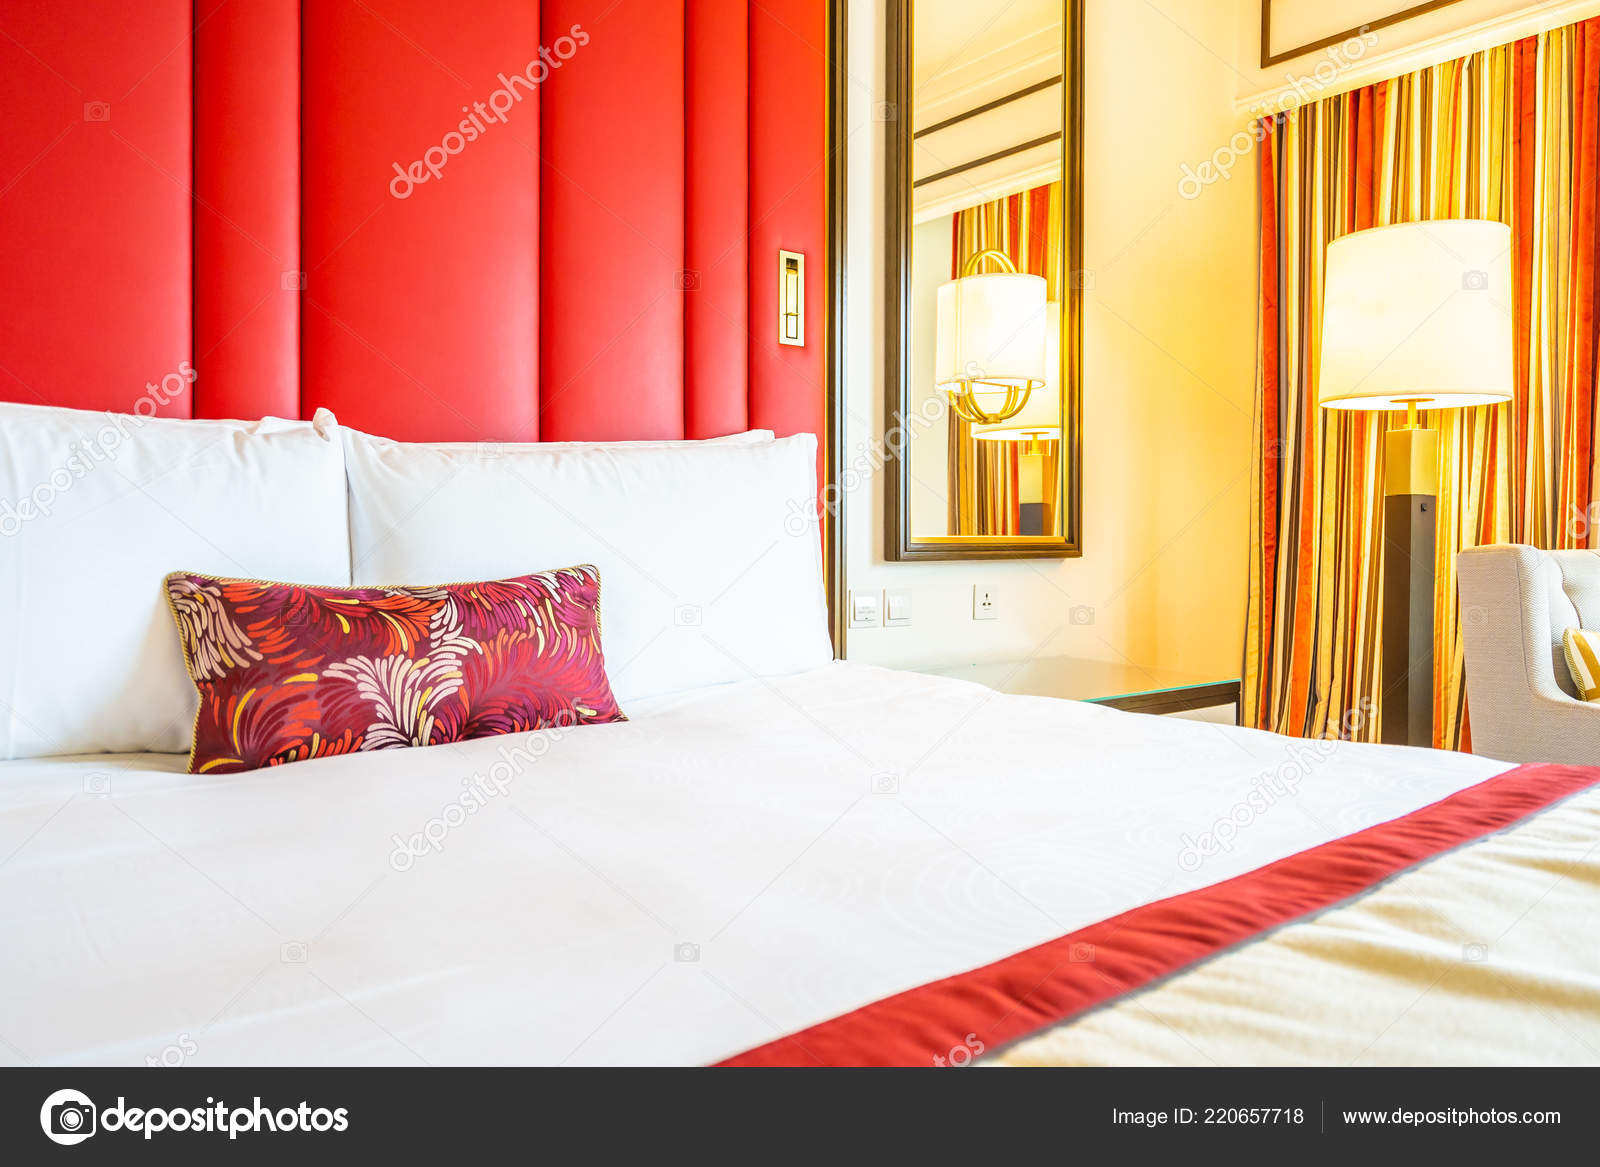 Hotel Beds Pictures Hotel Beds Stock Photos Images Depositphotos